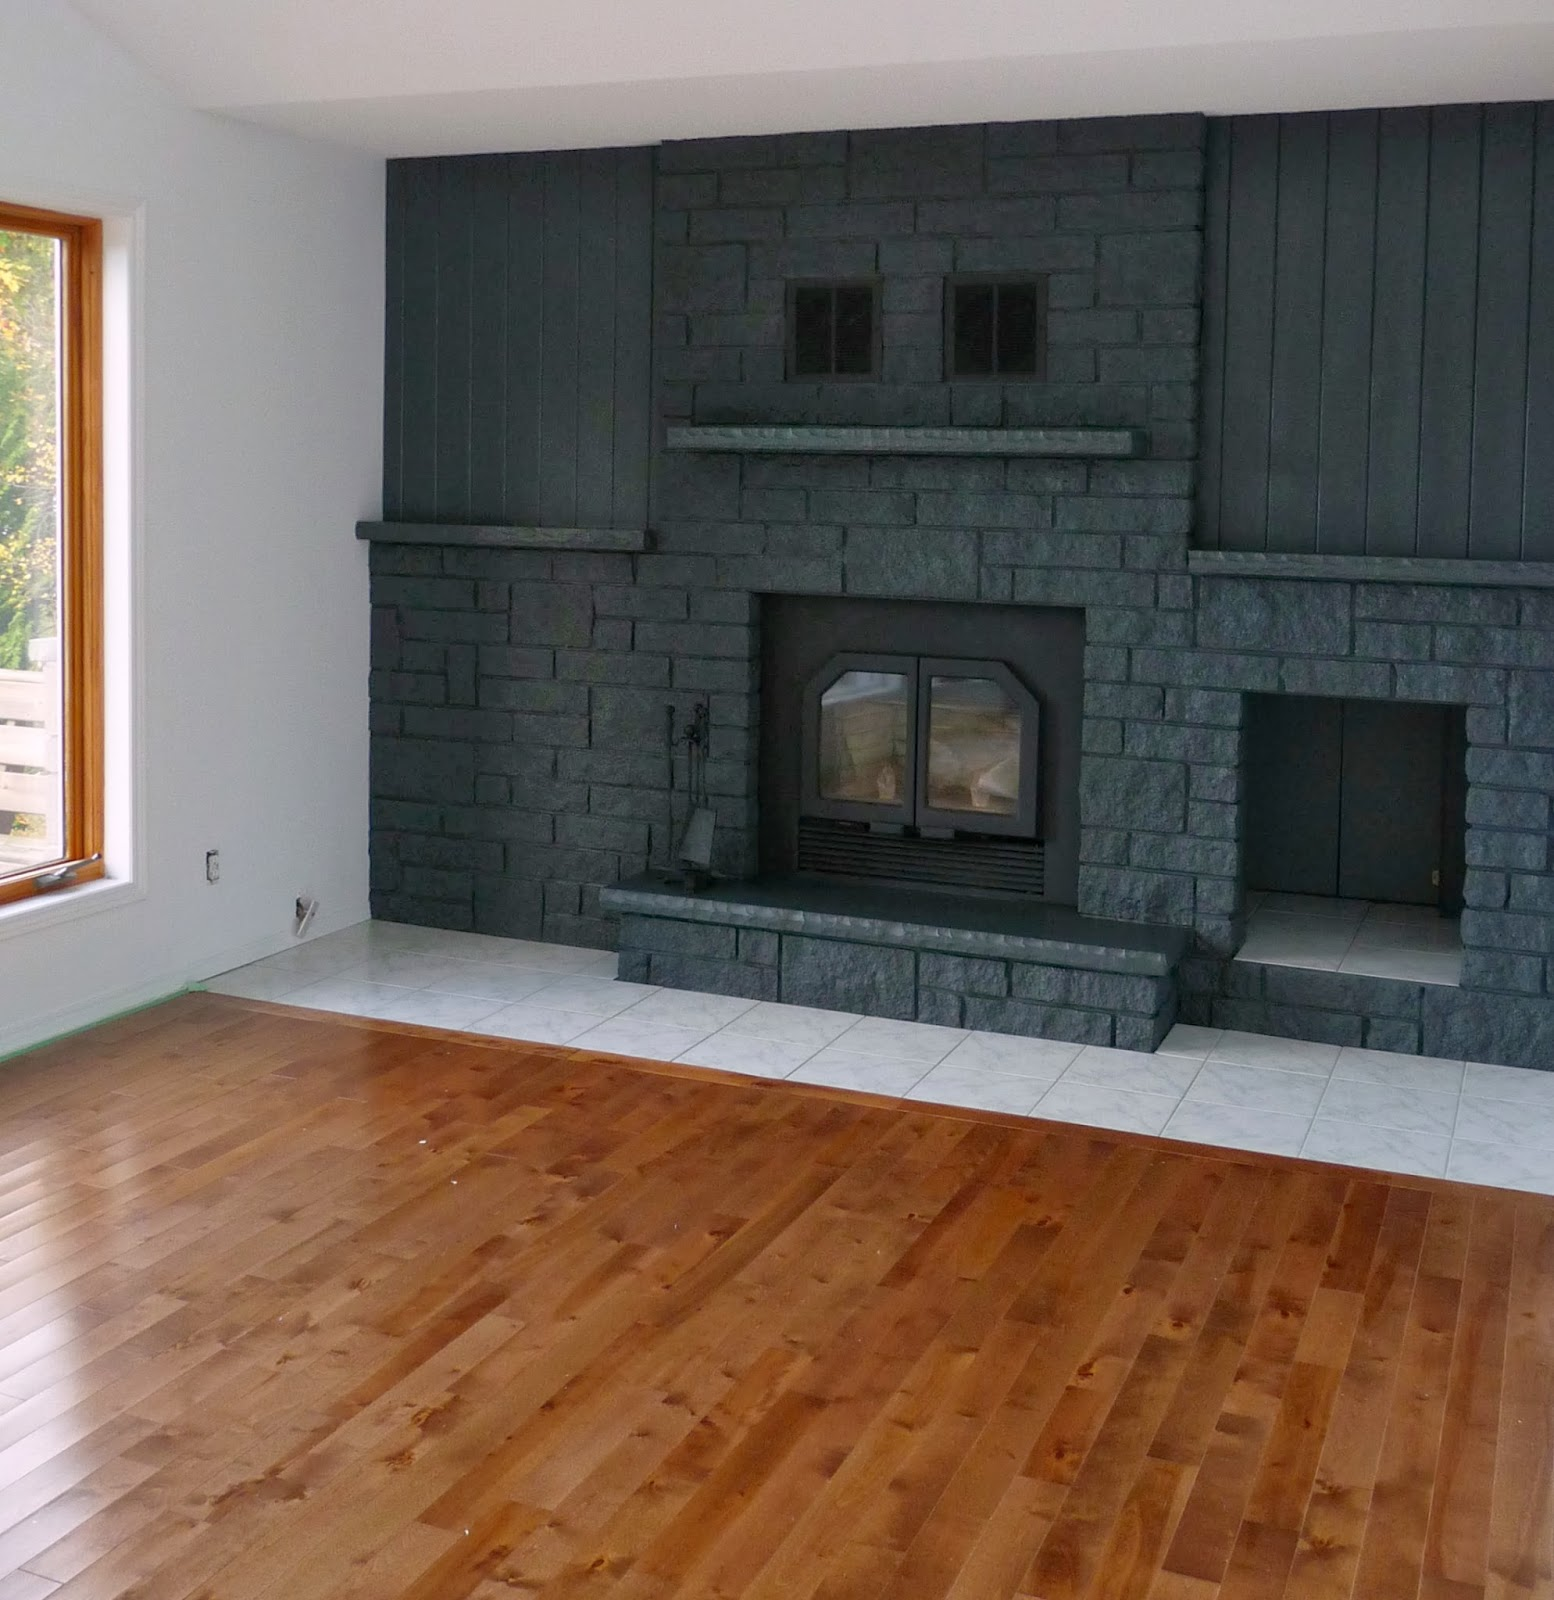 Dark grey fireplace, warm wood floors